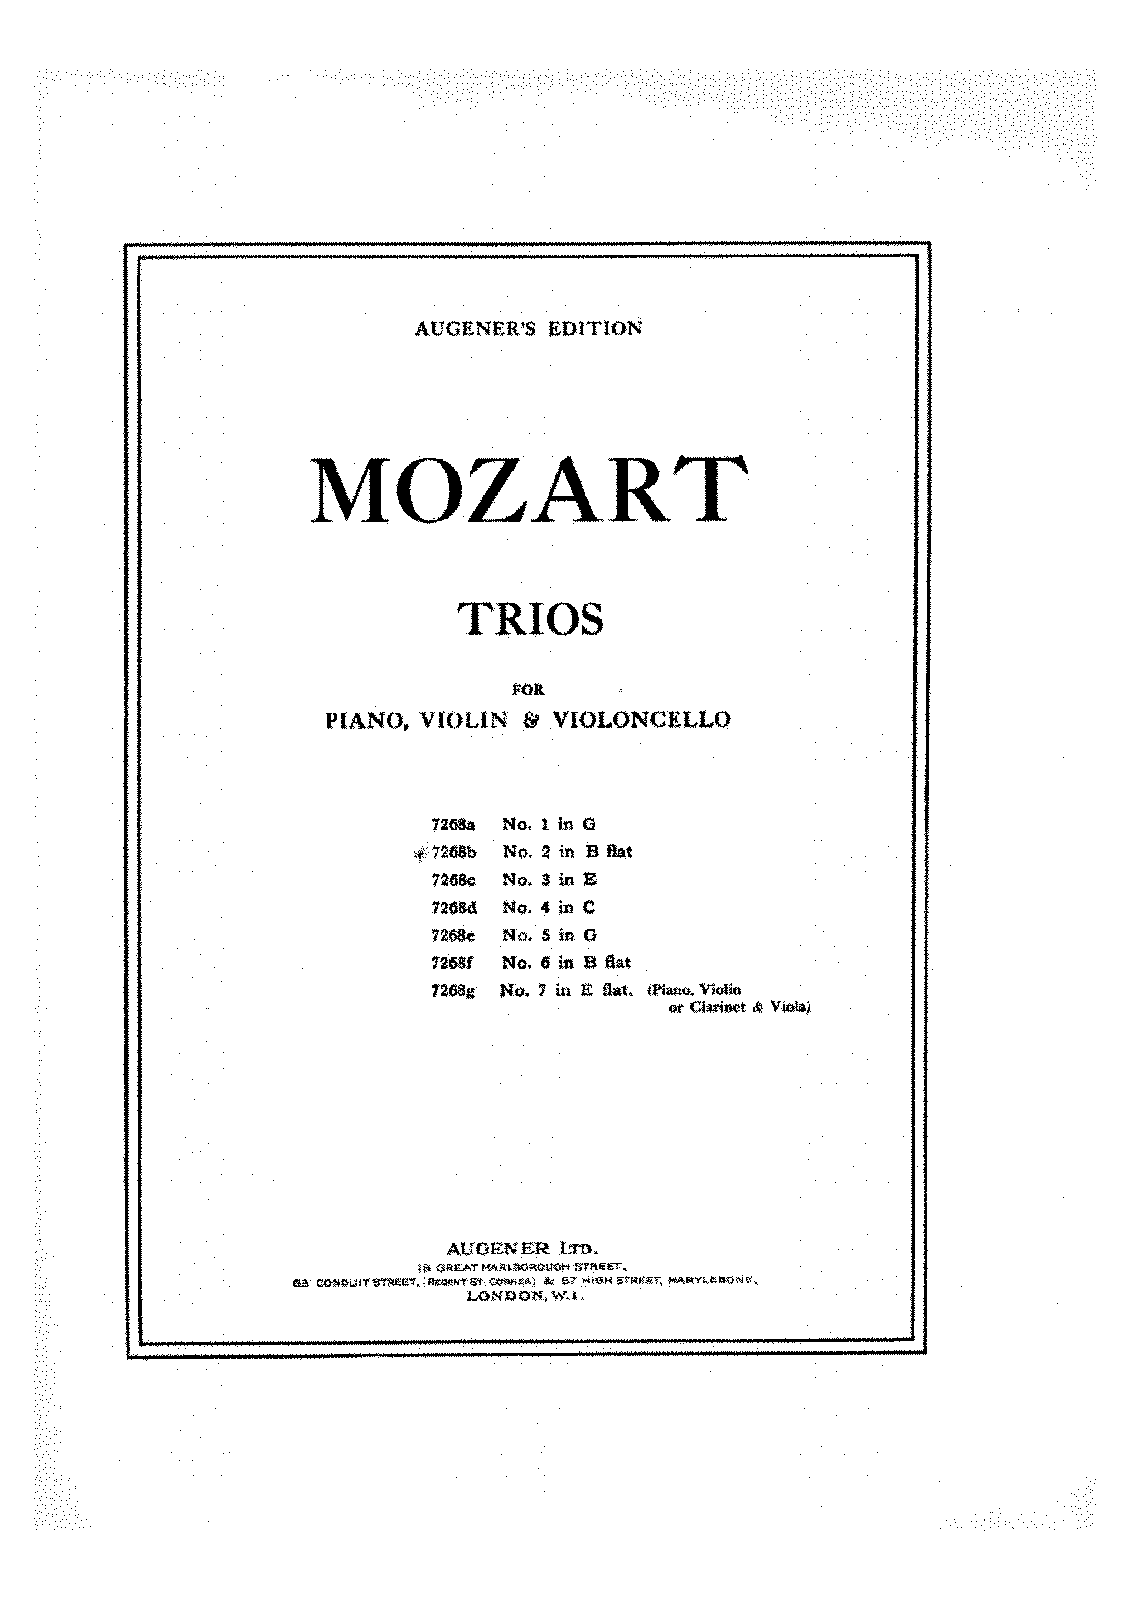 PMLP76538-Mozart - Piano Trio 02 in Bflat K502 - Score and Parts.pdf